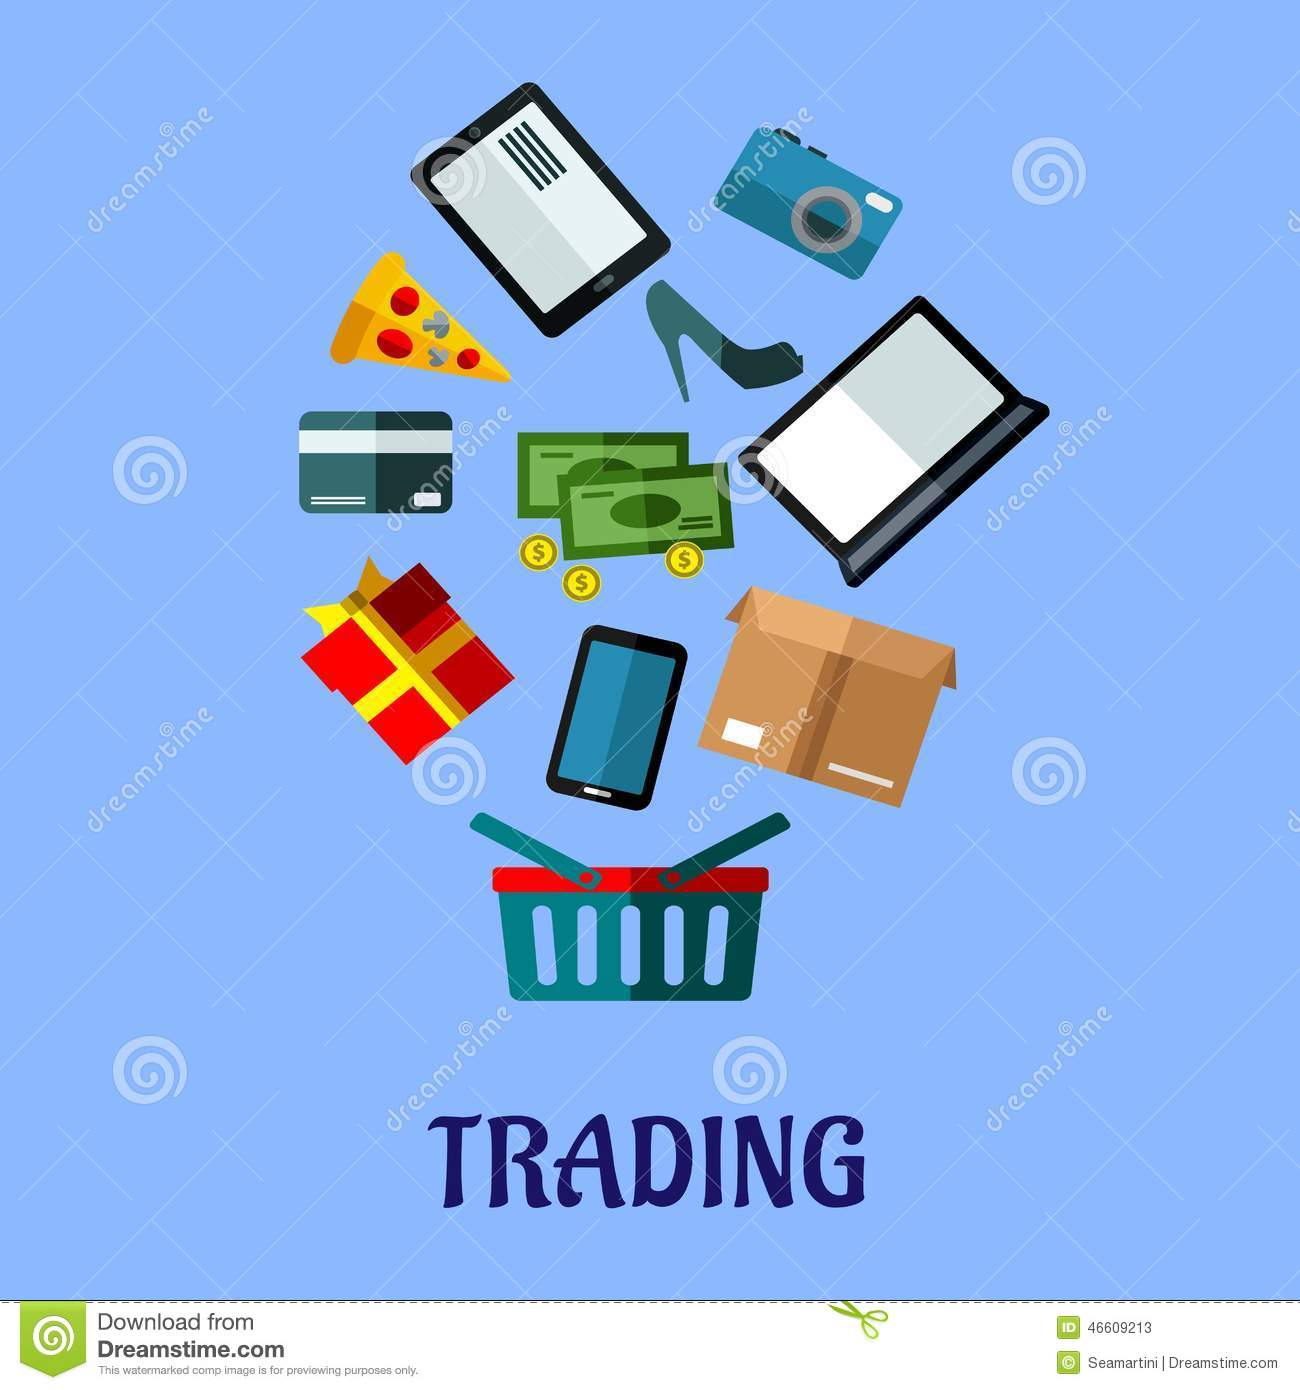 Tradingflat Poster Design For Online Shopping Stock Vector - Image: 46609213